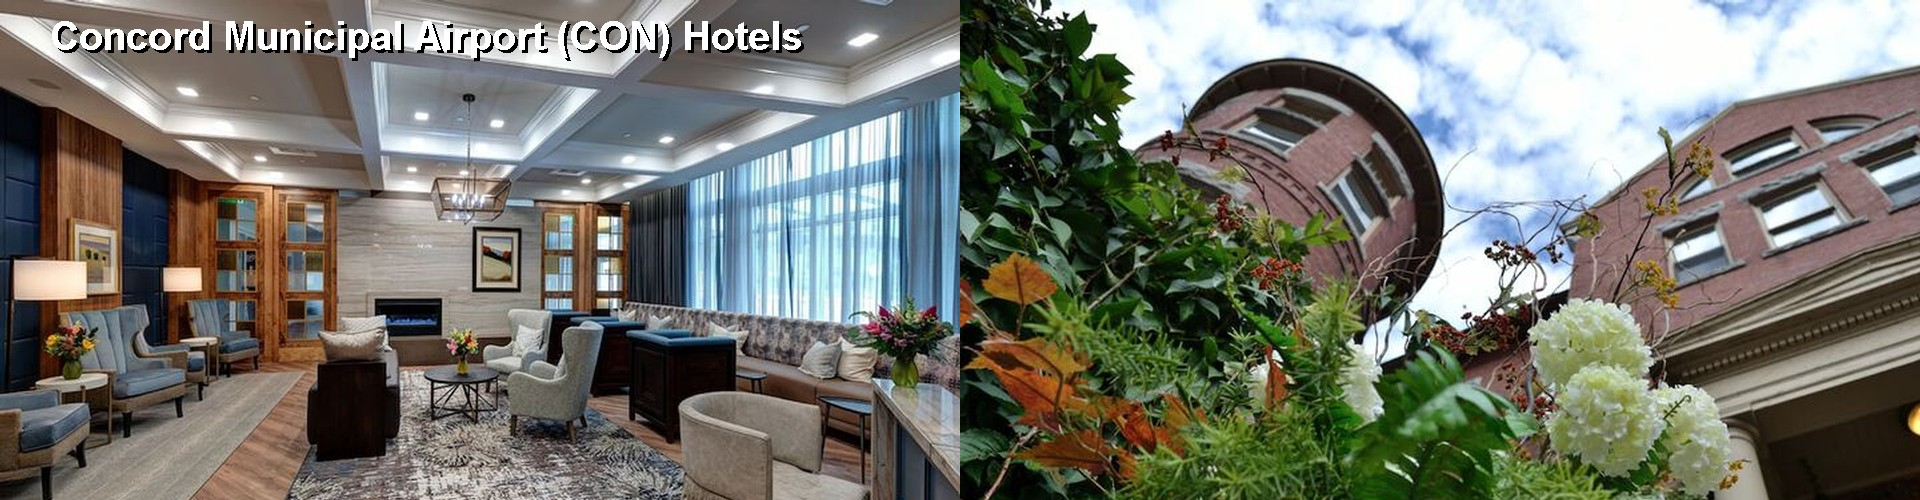 5 Best Hotels near Concord Municipal Airport (CON)